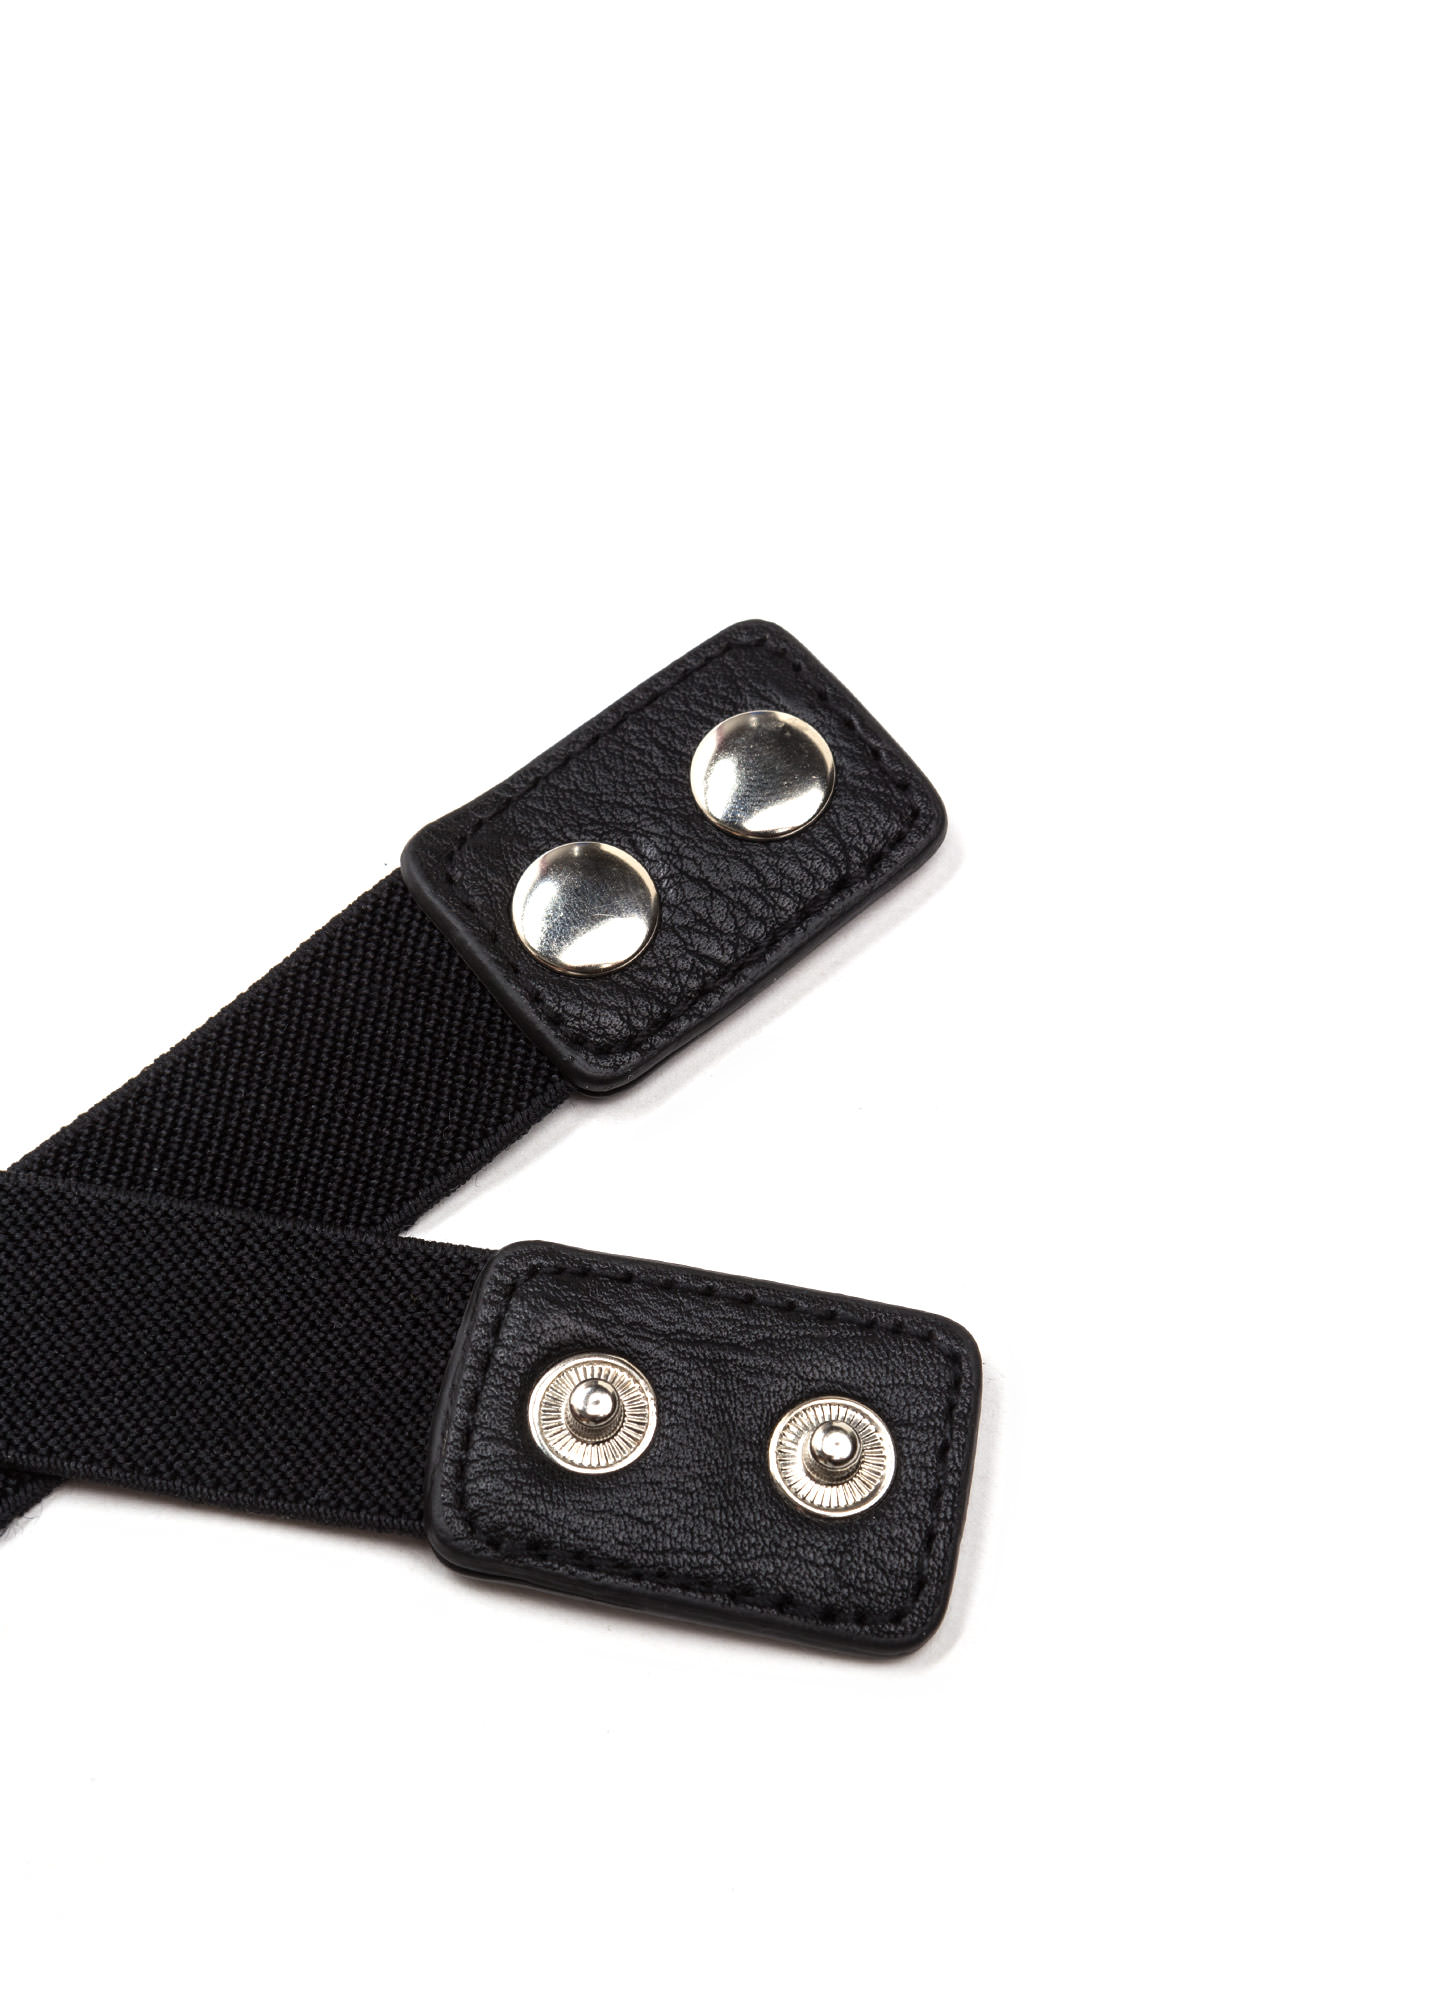 Style Bandit Stretchy Double Buckle Belt BLACKSILVER